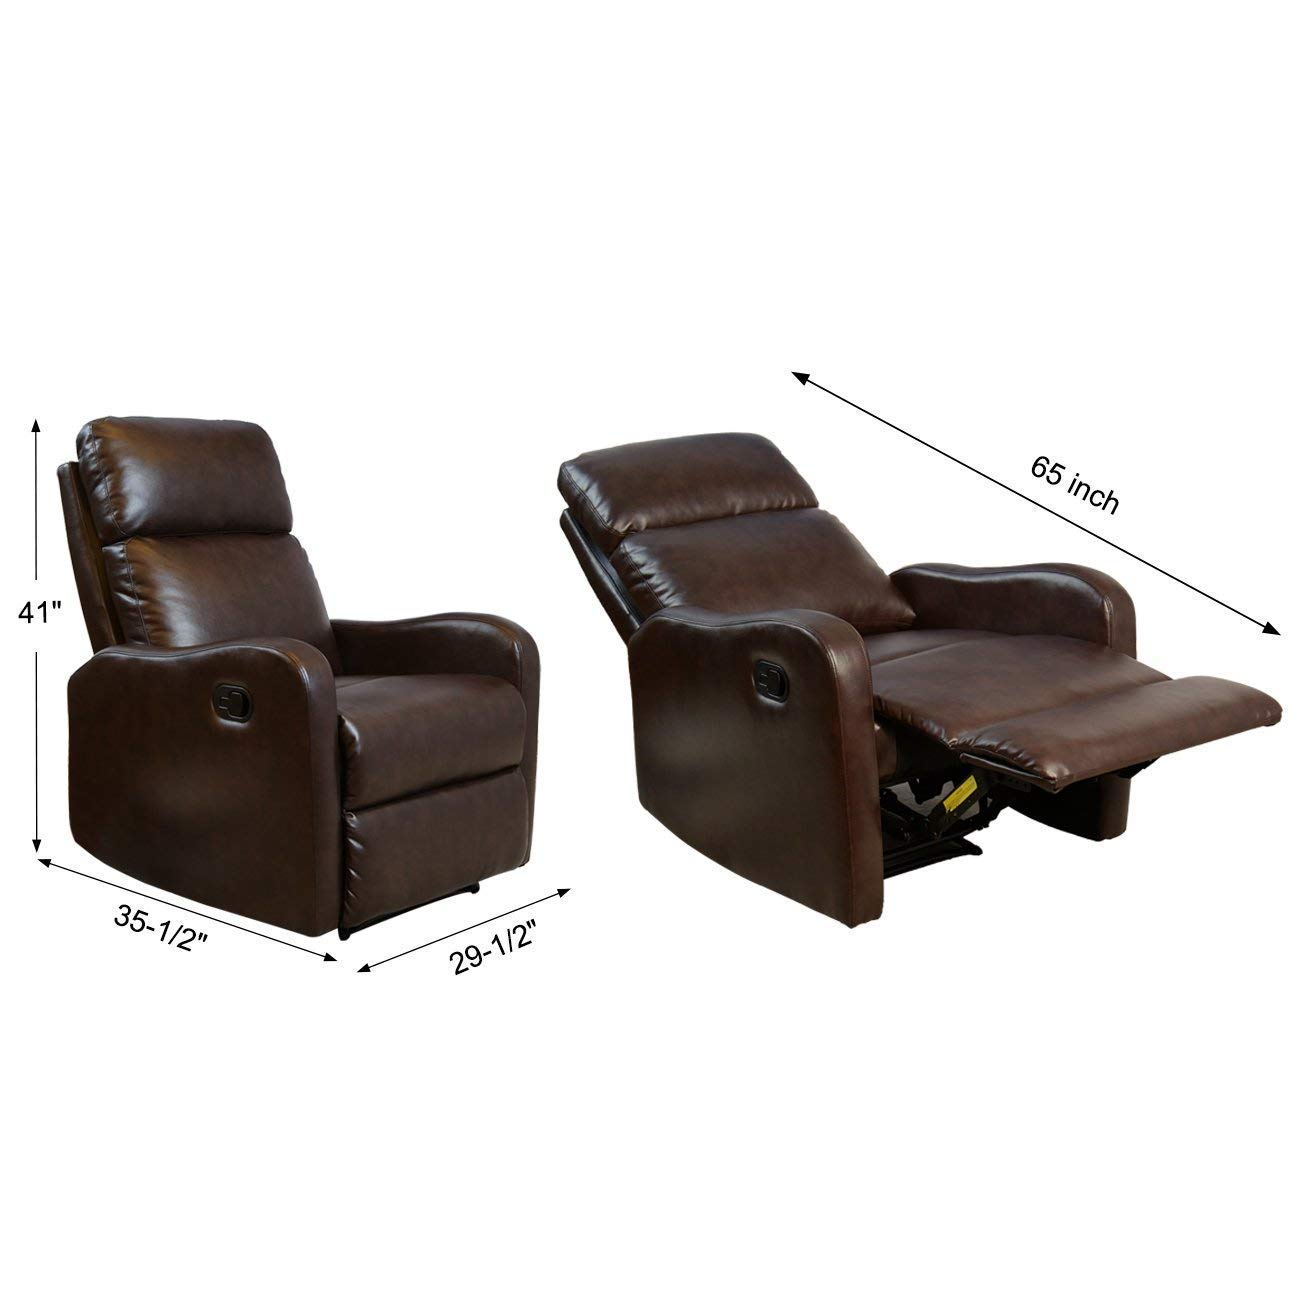 BONZY Recliner Chair Contemporary Black Leather Recliner